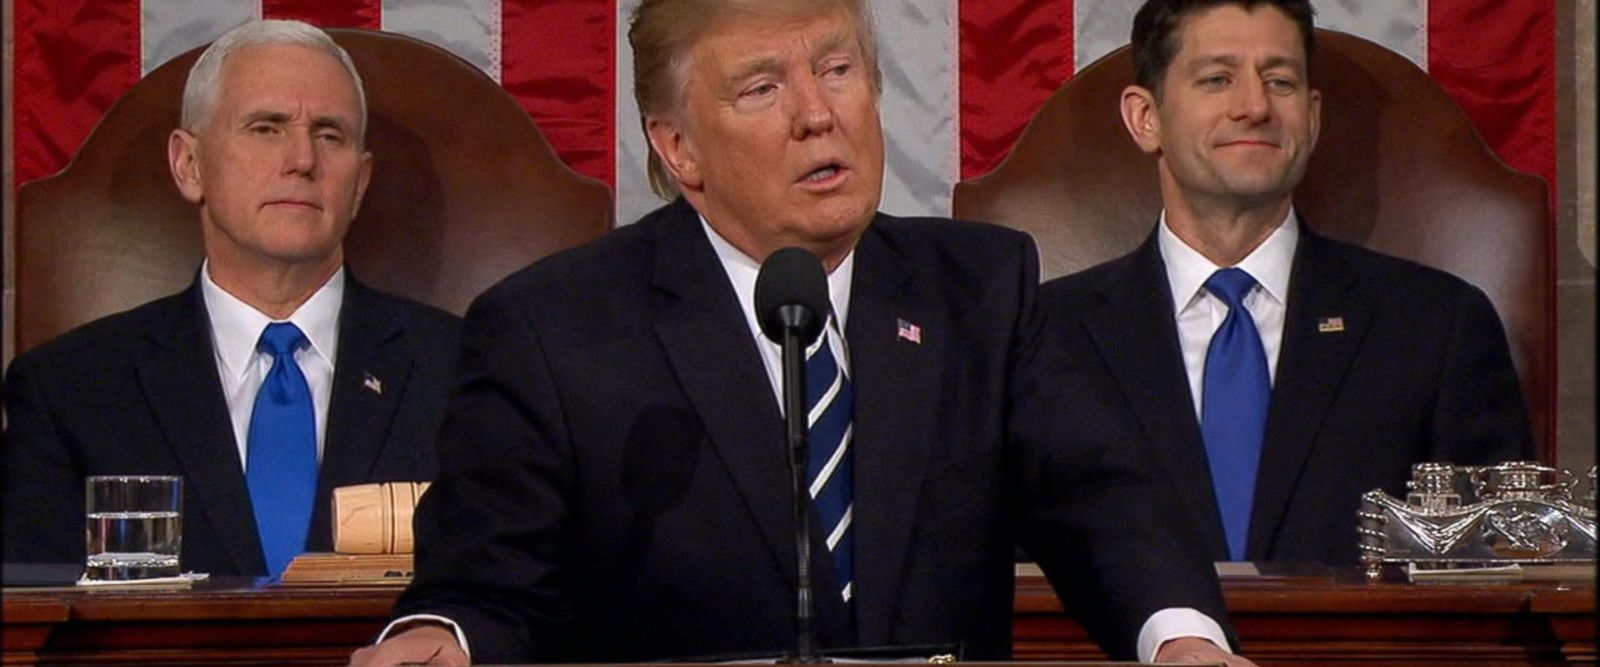 VIDEO: Fact checking President Trump's address to congress